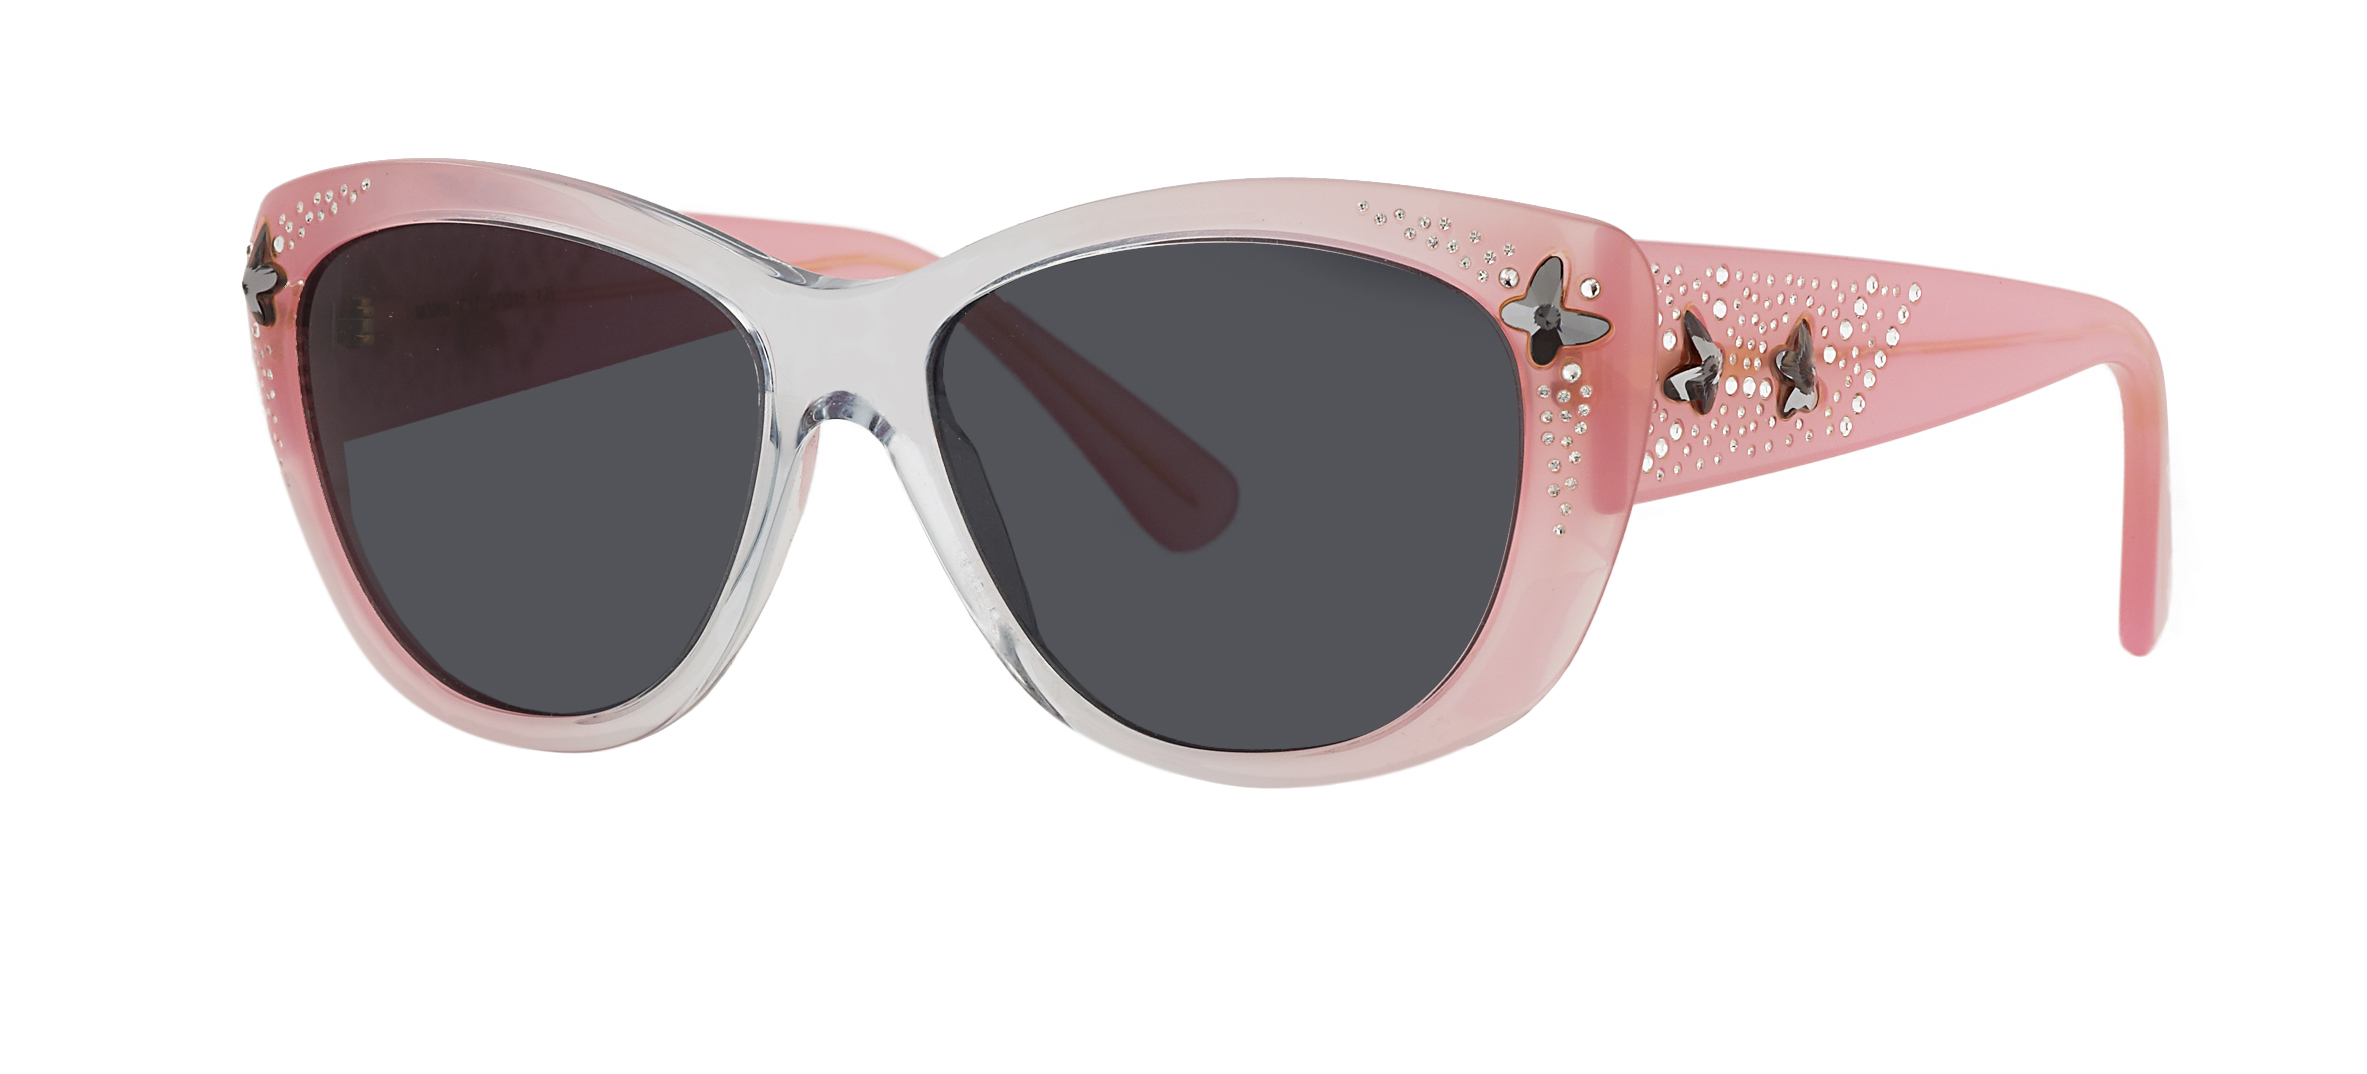 1000 Images About Women S Frames And Sunglasses On